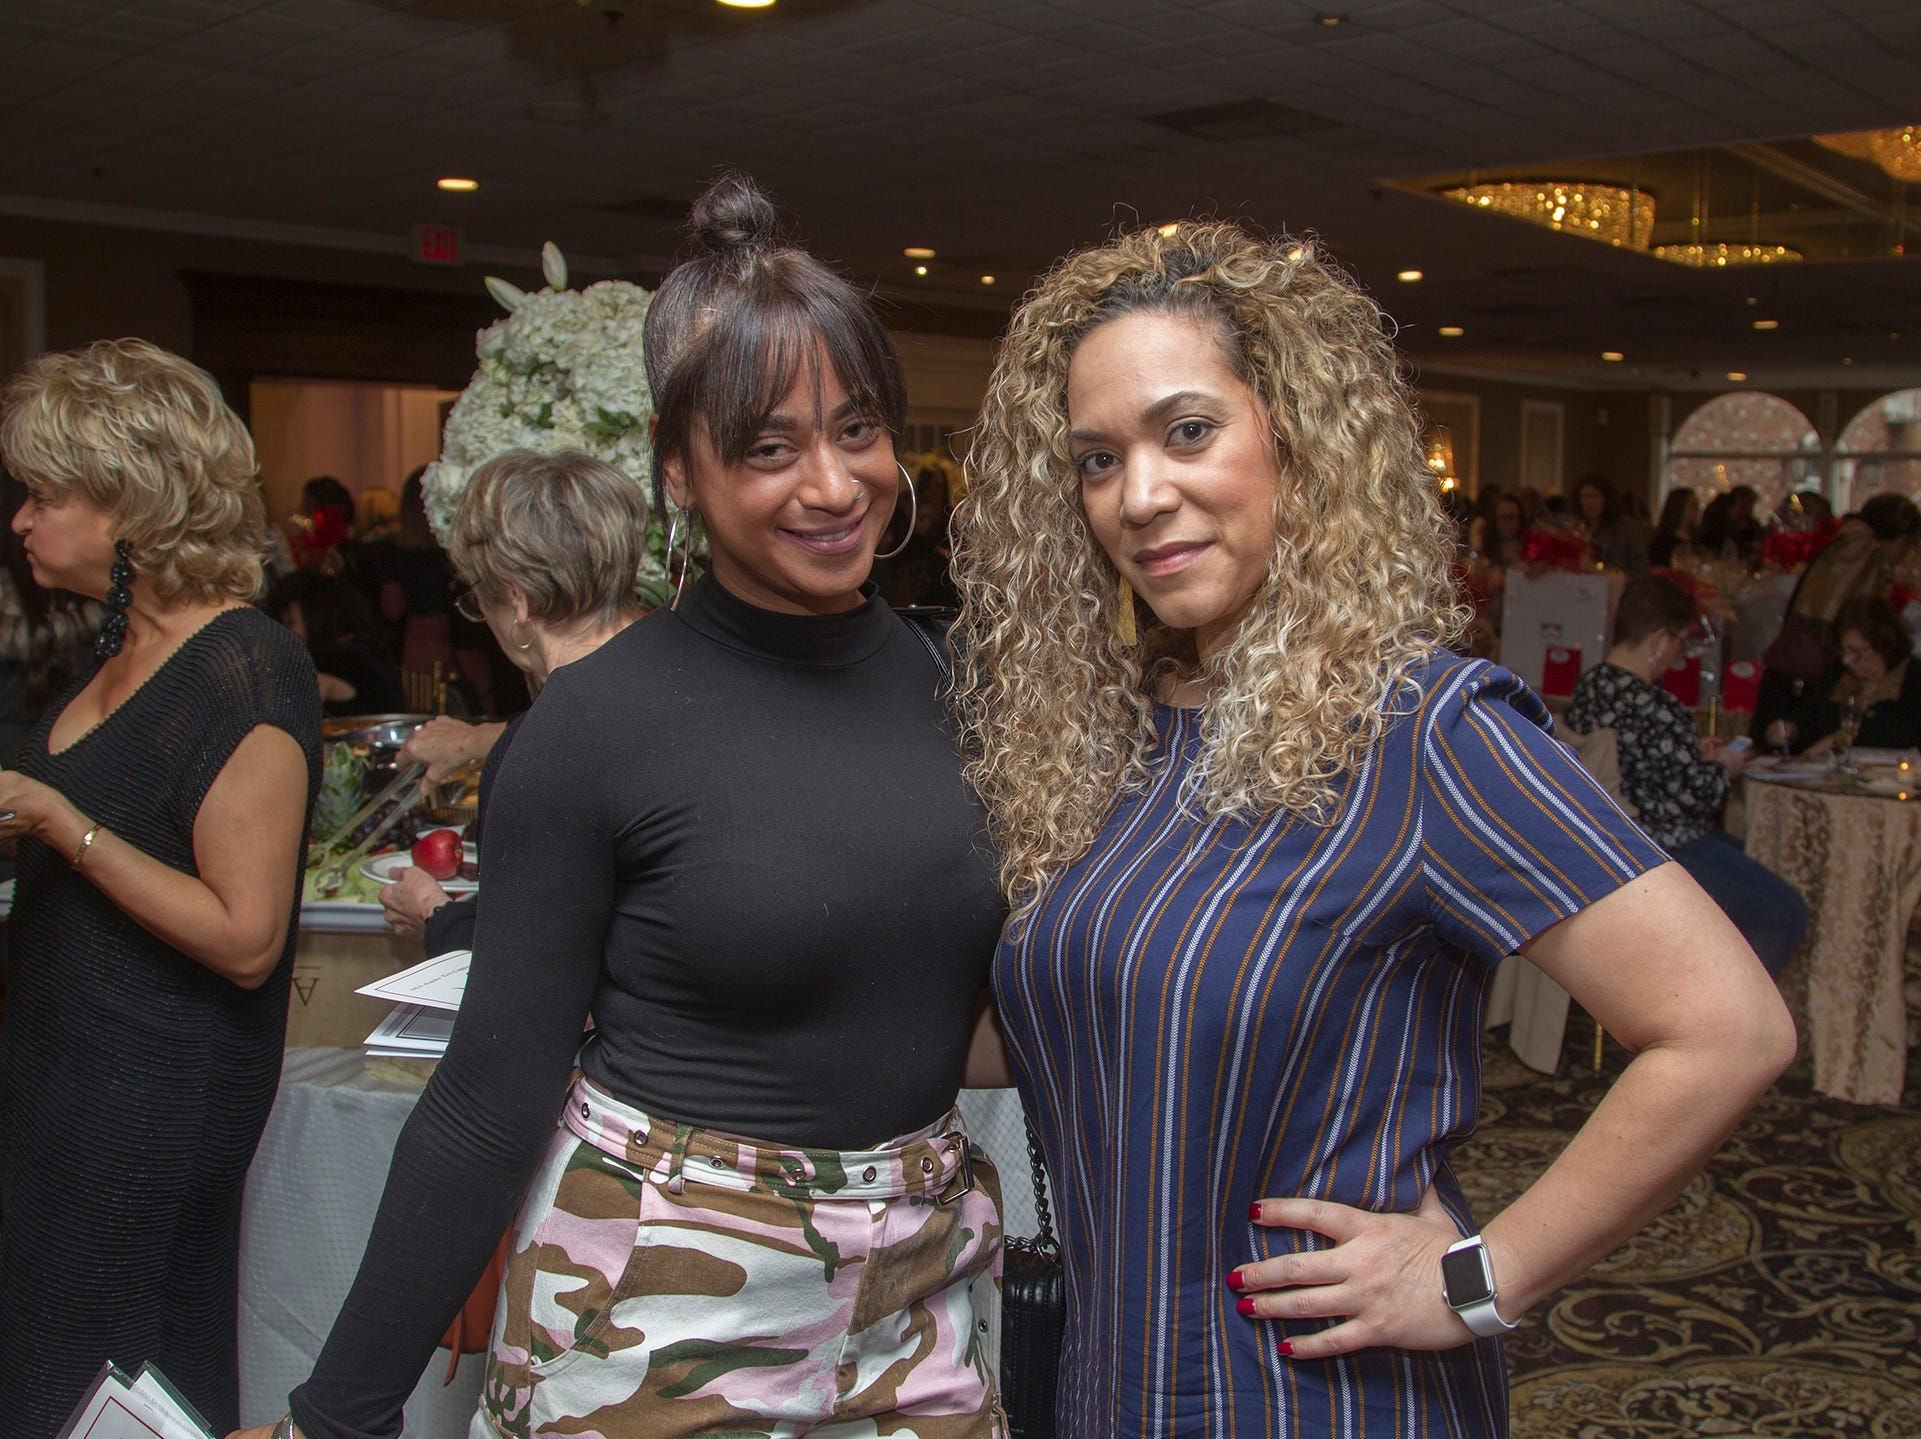 Carolyn Carpenas, Cecilia Alvarez. Immaculate Heart Academy held its annual Fashion Show fundraiser at Florentine Gardens in River Vale. 12/02/2018